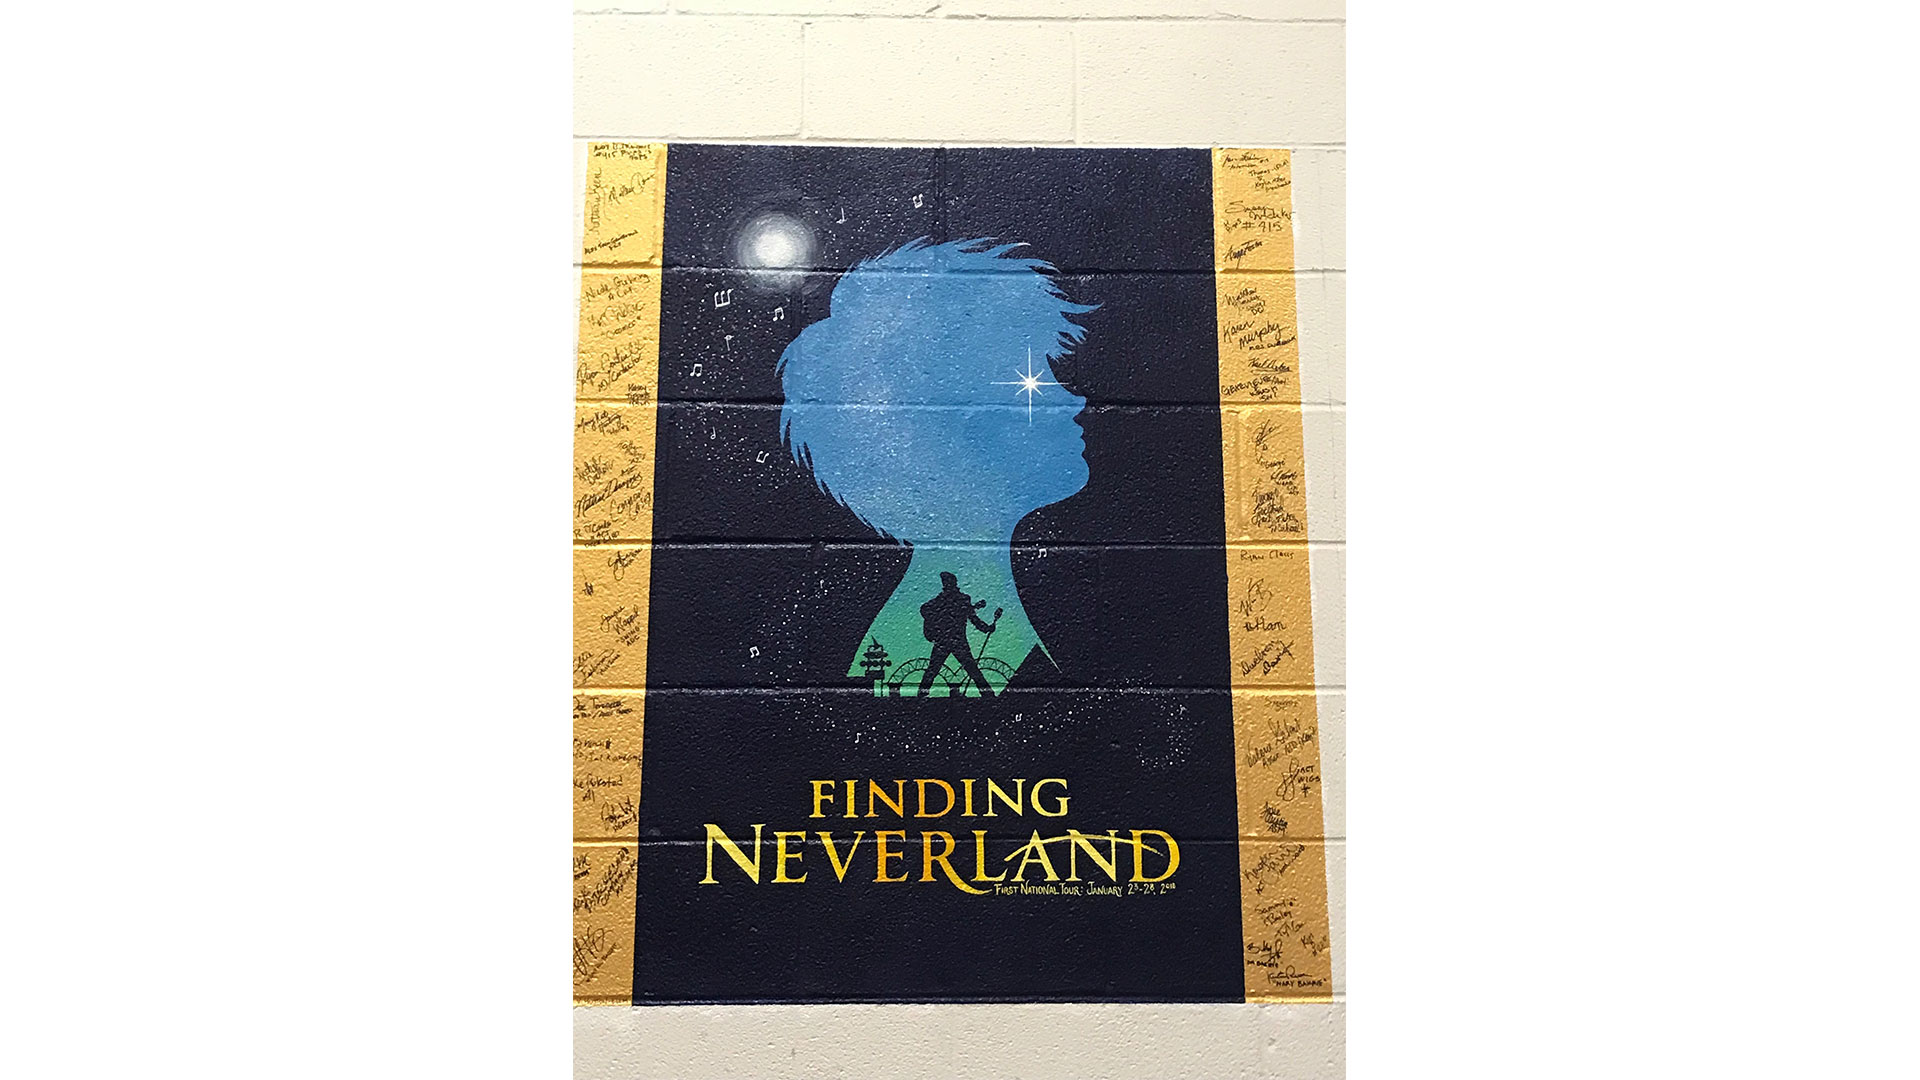 The first national tour for Finding Neverland painted a very cool tribute to not only Elvis but also the city of Memphis itself in silhouette.